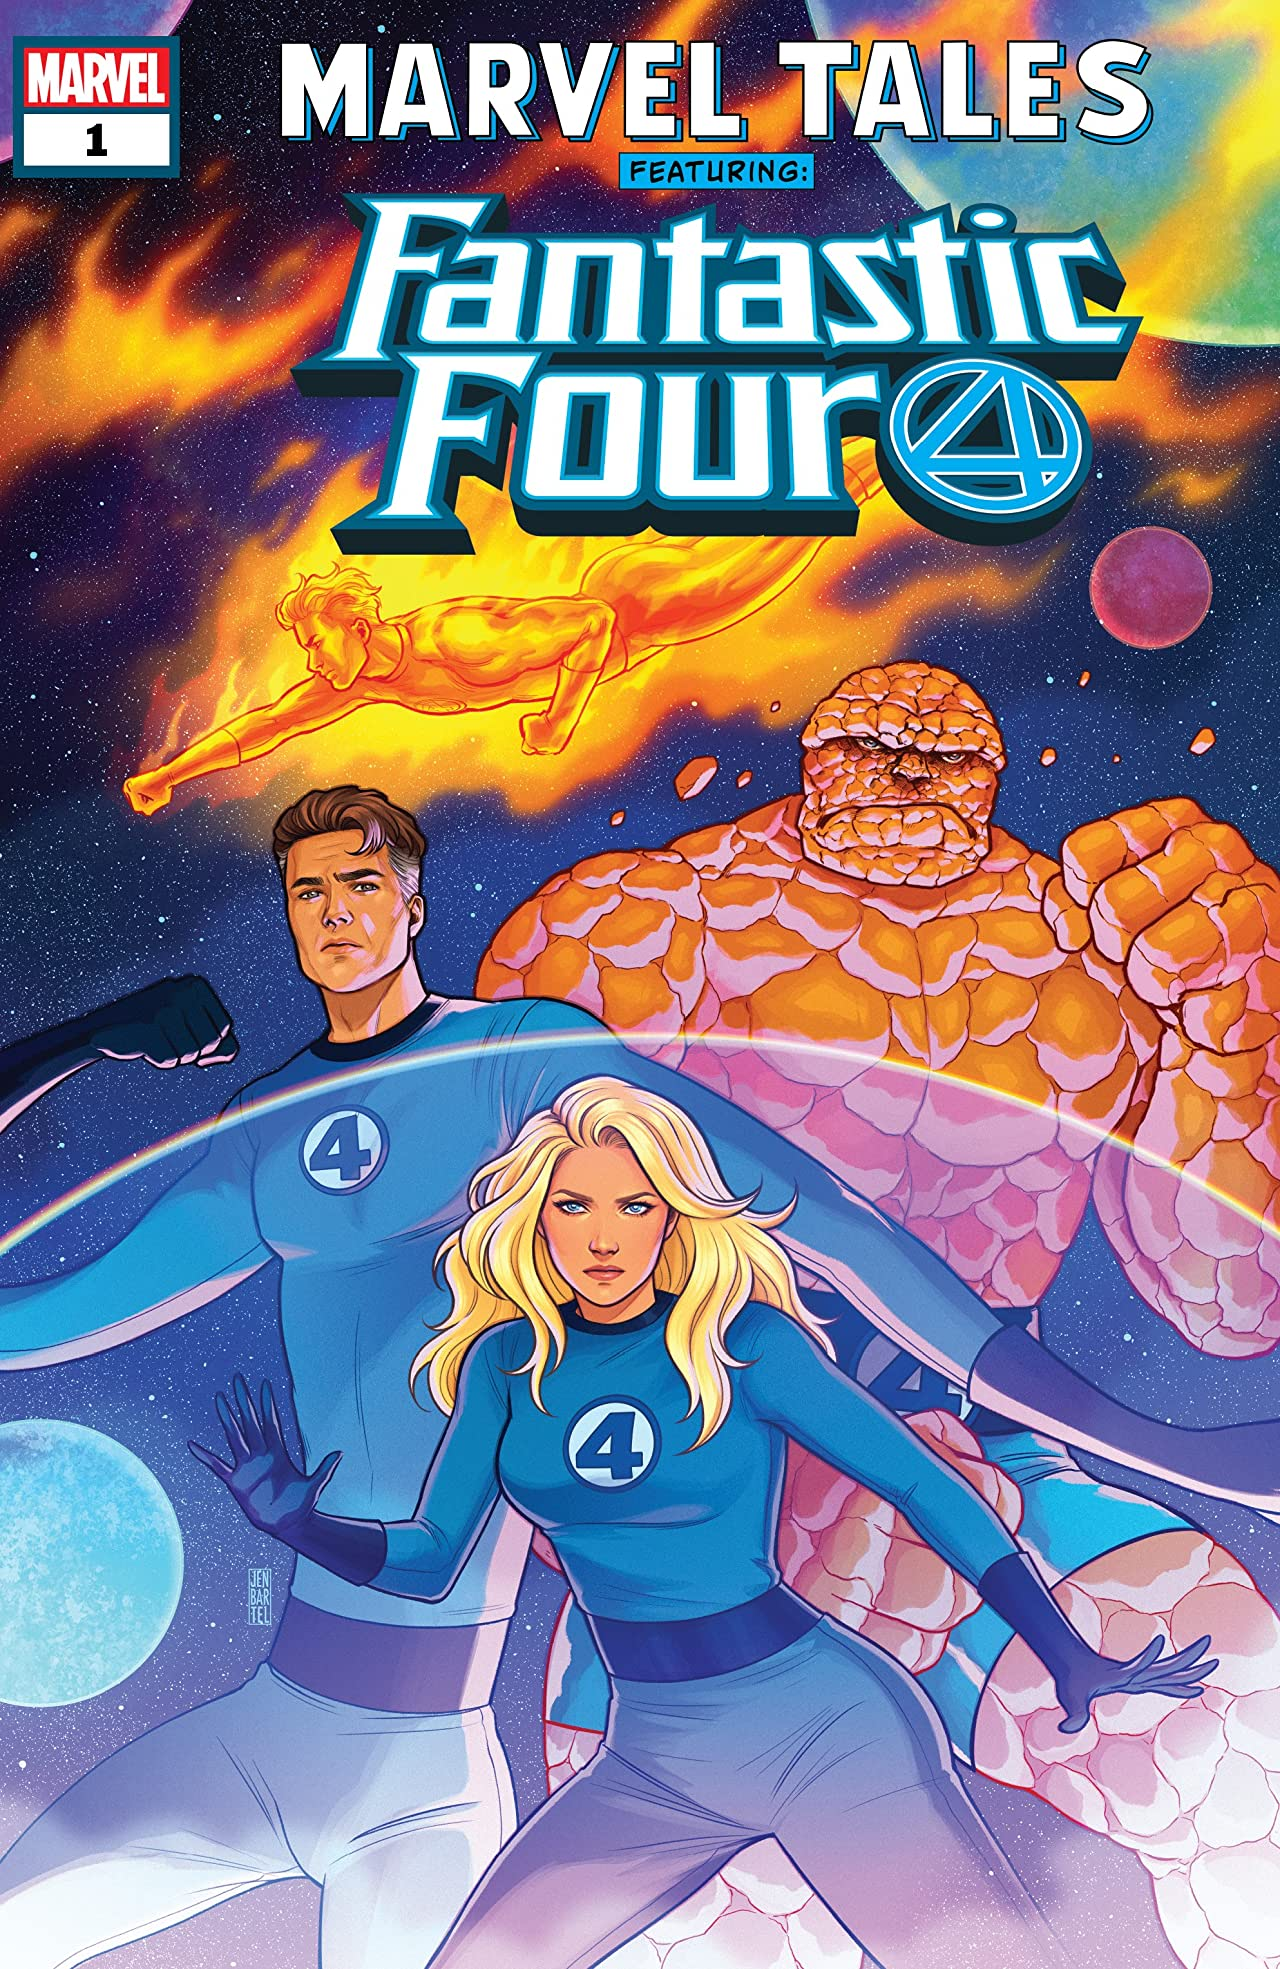 Marvel Tales: Fantastic Four (2019) #1